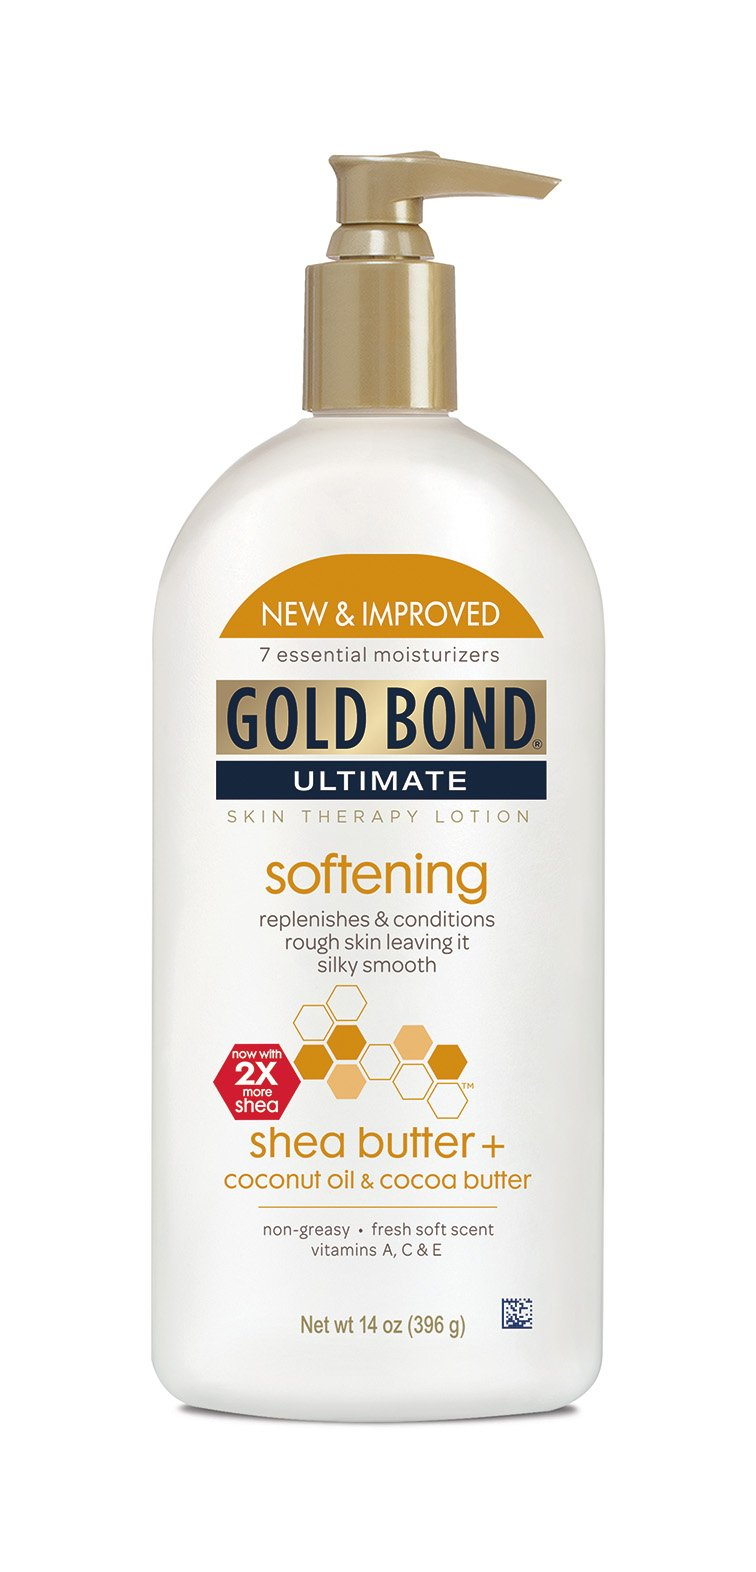 Gold Bond Ultimate Softening Lotion 14 Ounces (Pack of 3) Helps Smooth and Soften Rough and Dry Skin, Non-Greasy Moisture-Rich Cream with Coconut Oil, Shea Butter, Cocoa Butter by Gold Bond